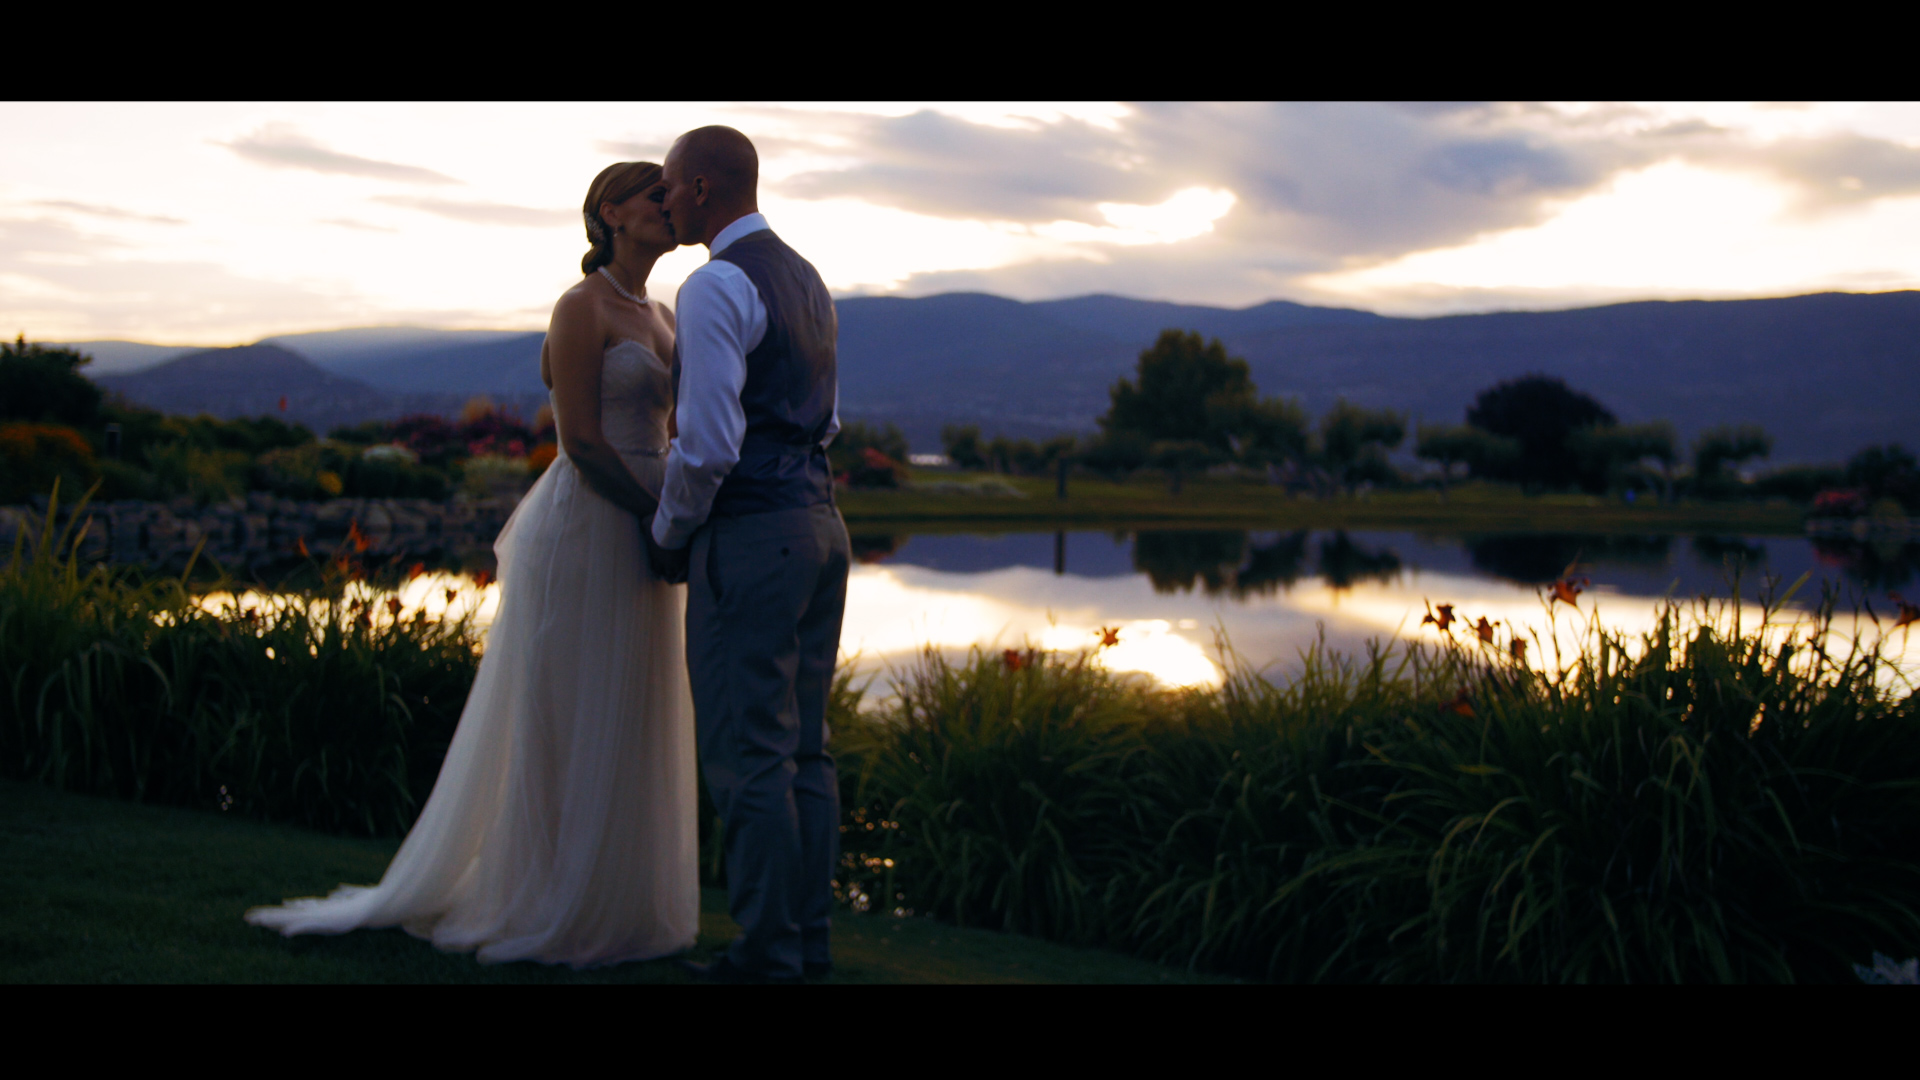 Bride and Groom - Sunset